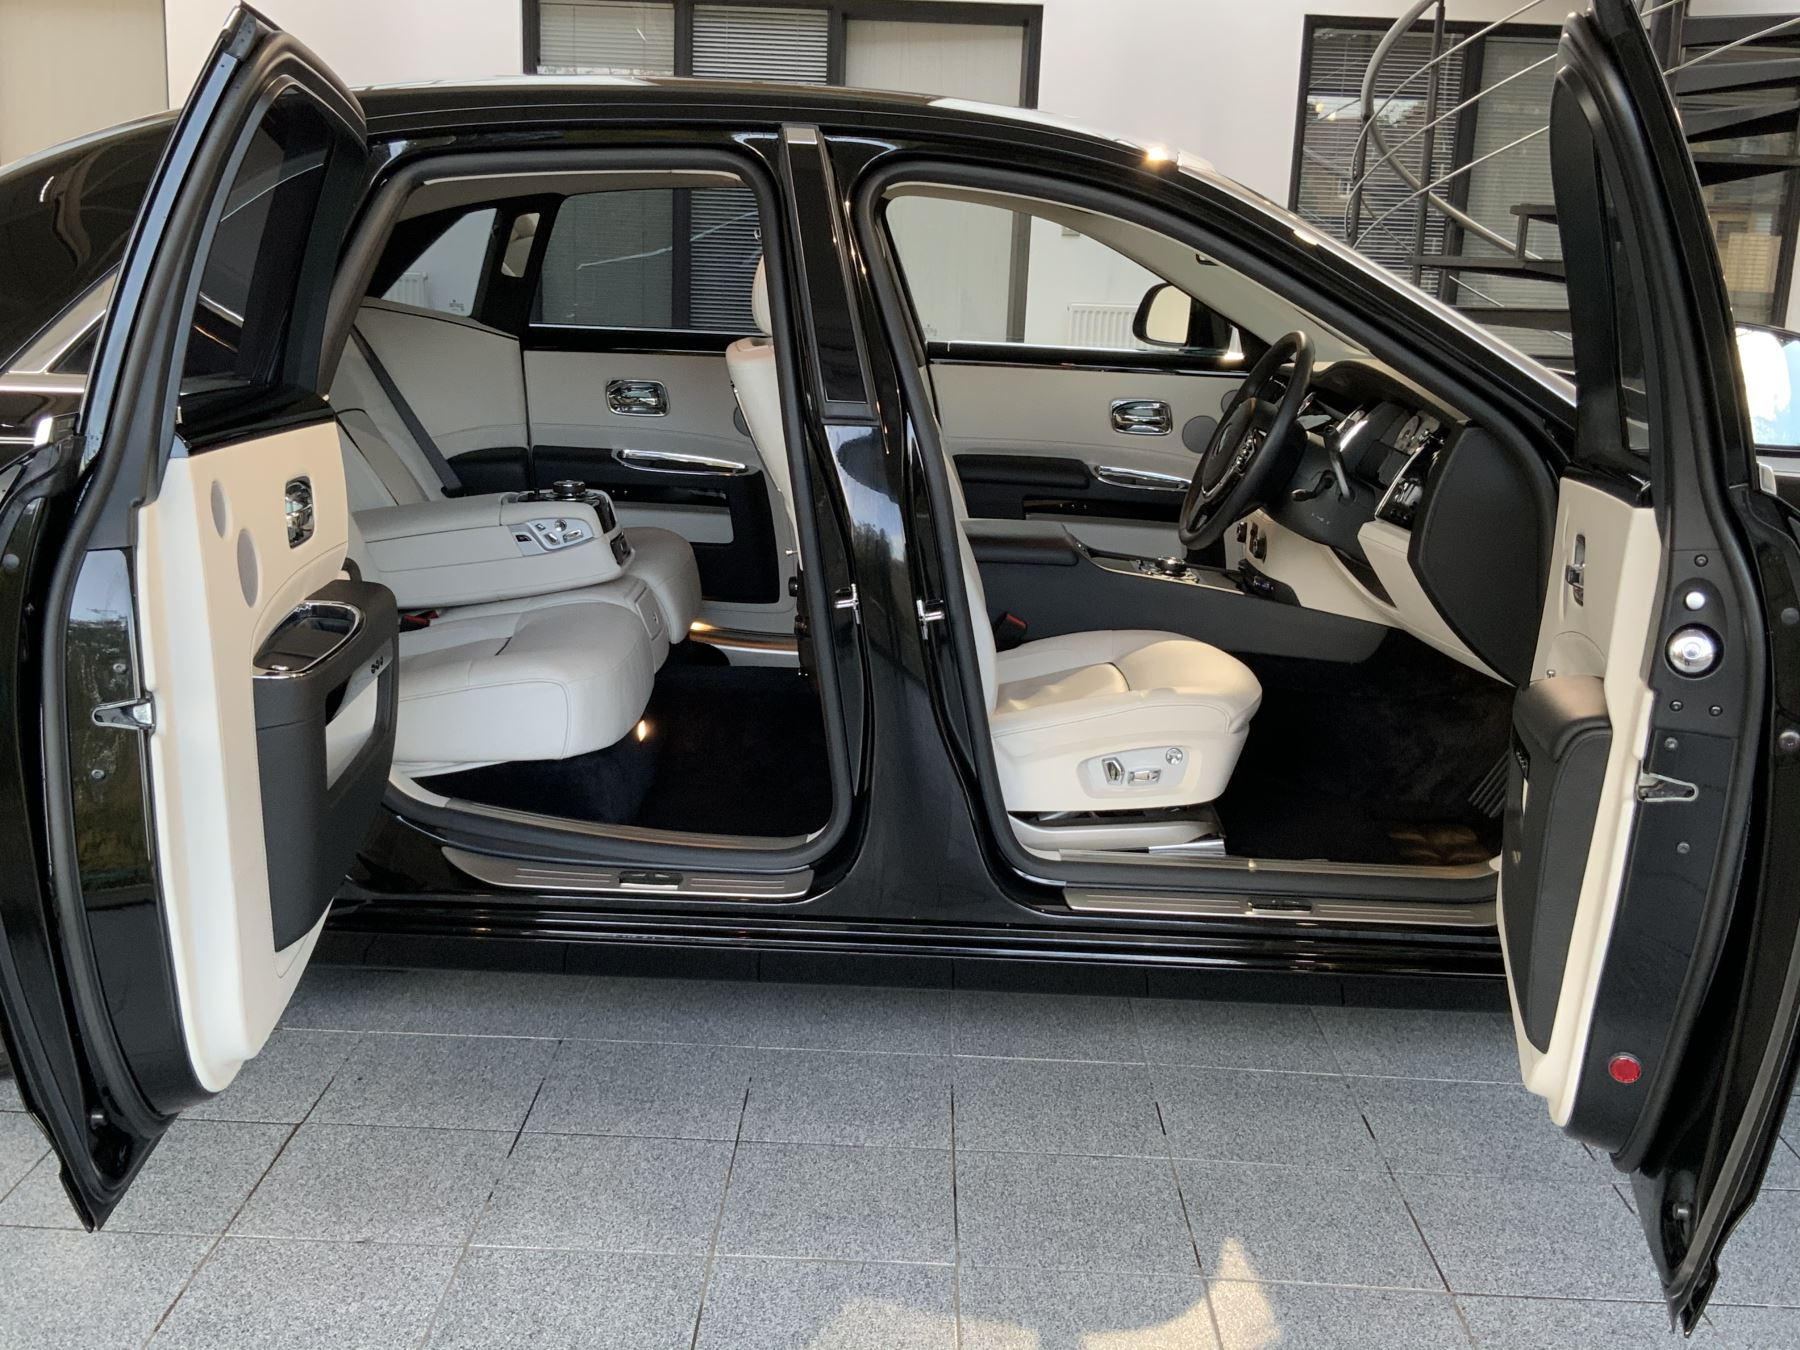 Rolls-Royce Ghost V-SPEC 4dr Auto image 2